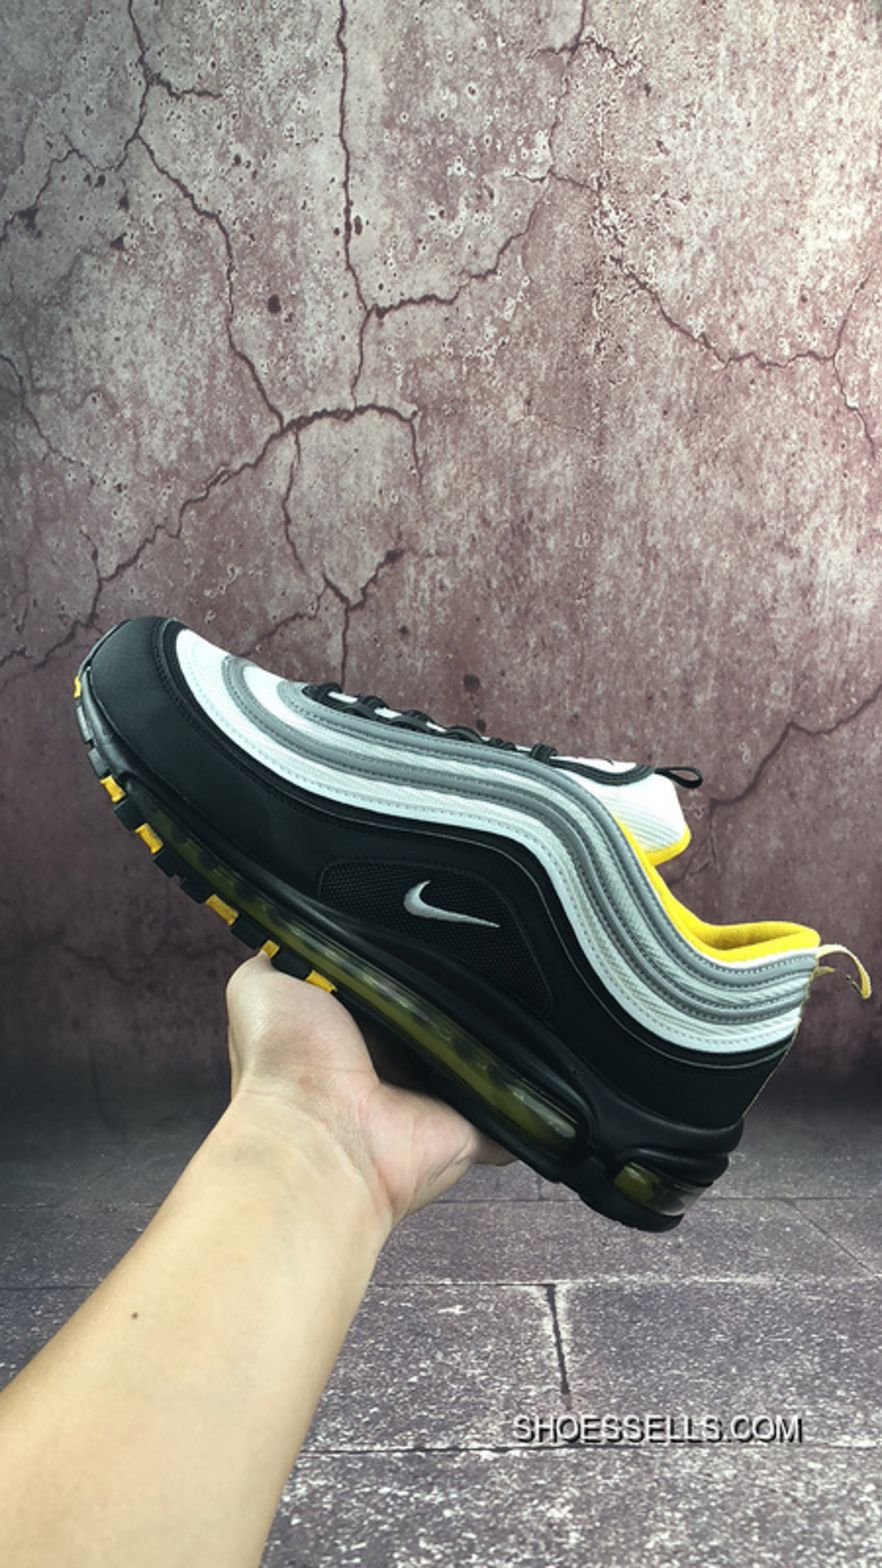 Nike Air Max 97 Series All match Retro Zoom Jogging Shoes